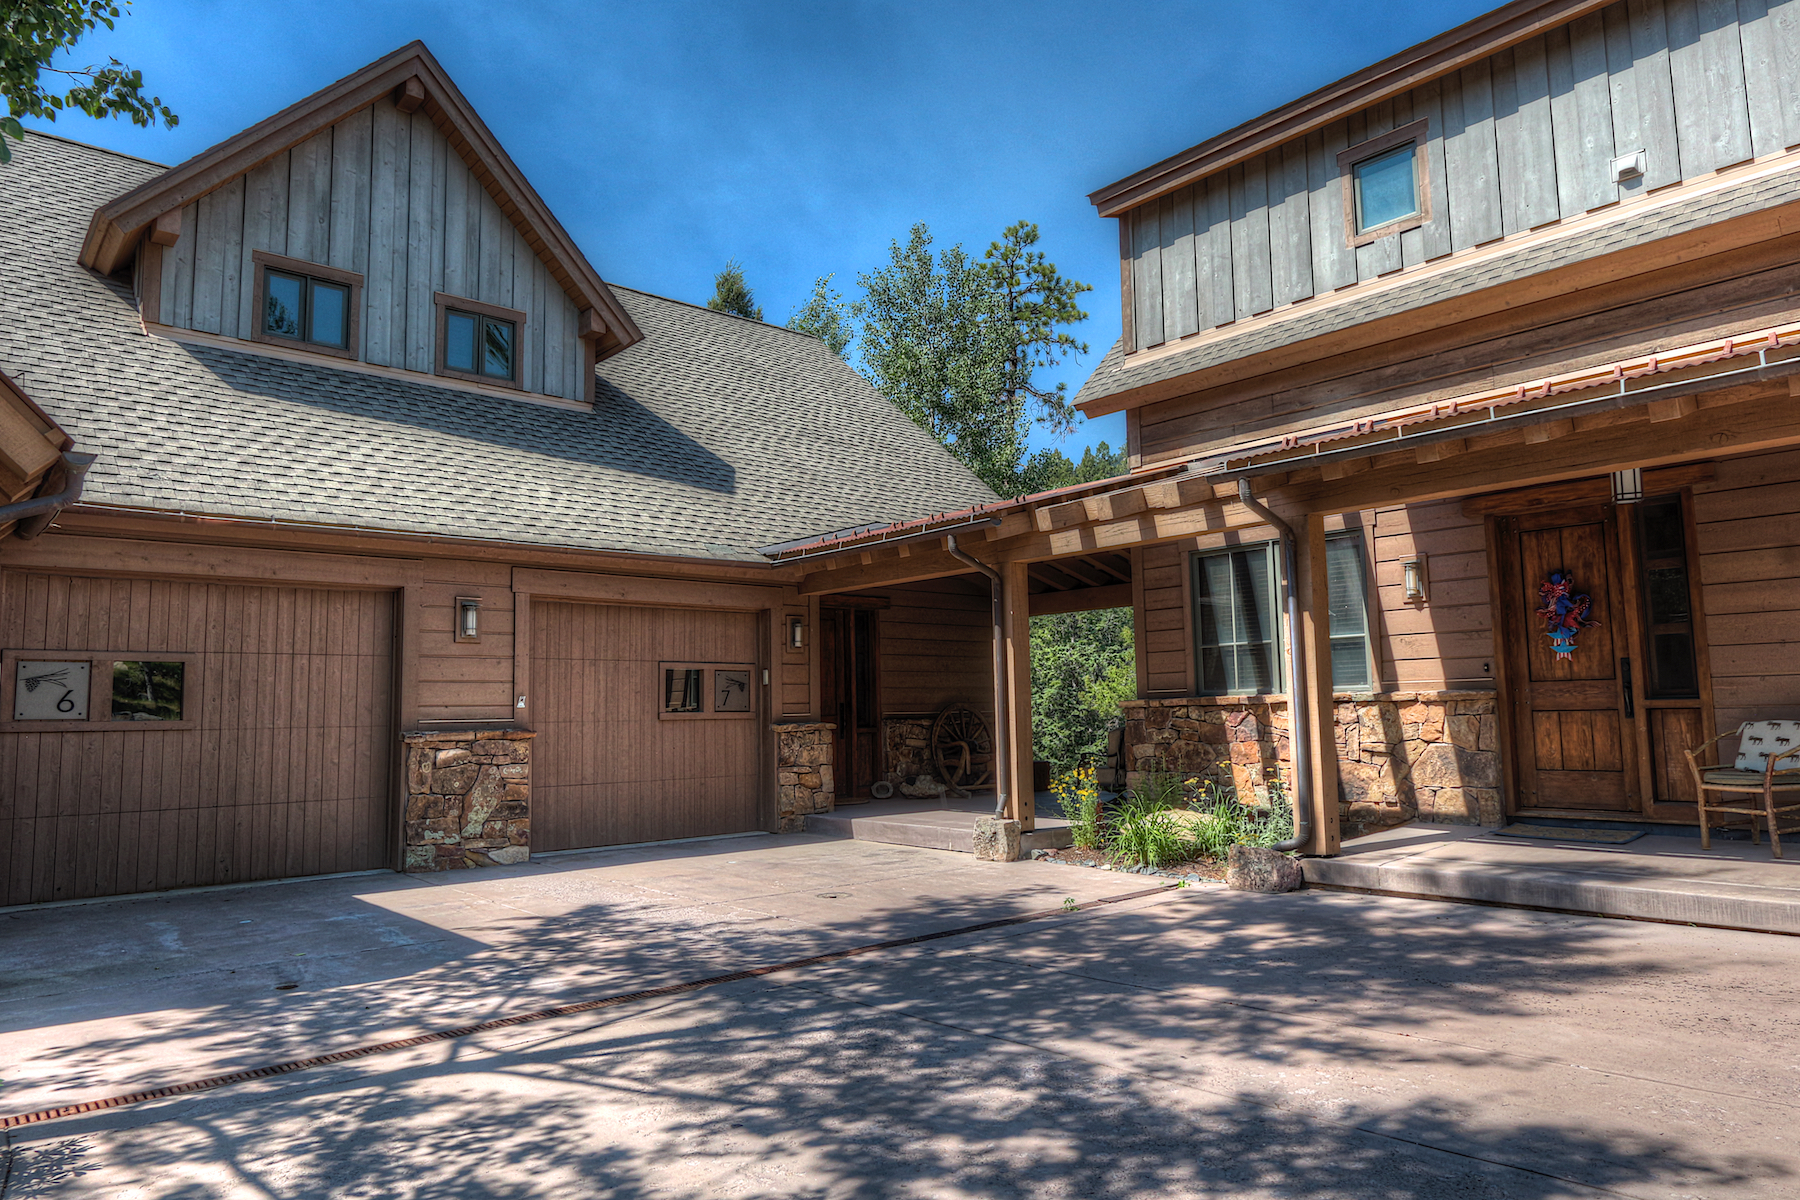 Single Family Home for Sale at 590 Glacier Club Drive #7 590 Glacier Club Dr. #7 Durango, Colorado 81301 United States